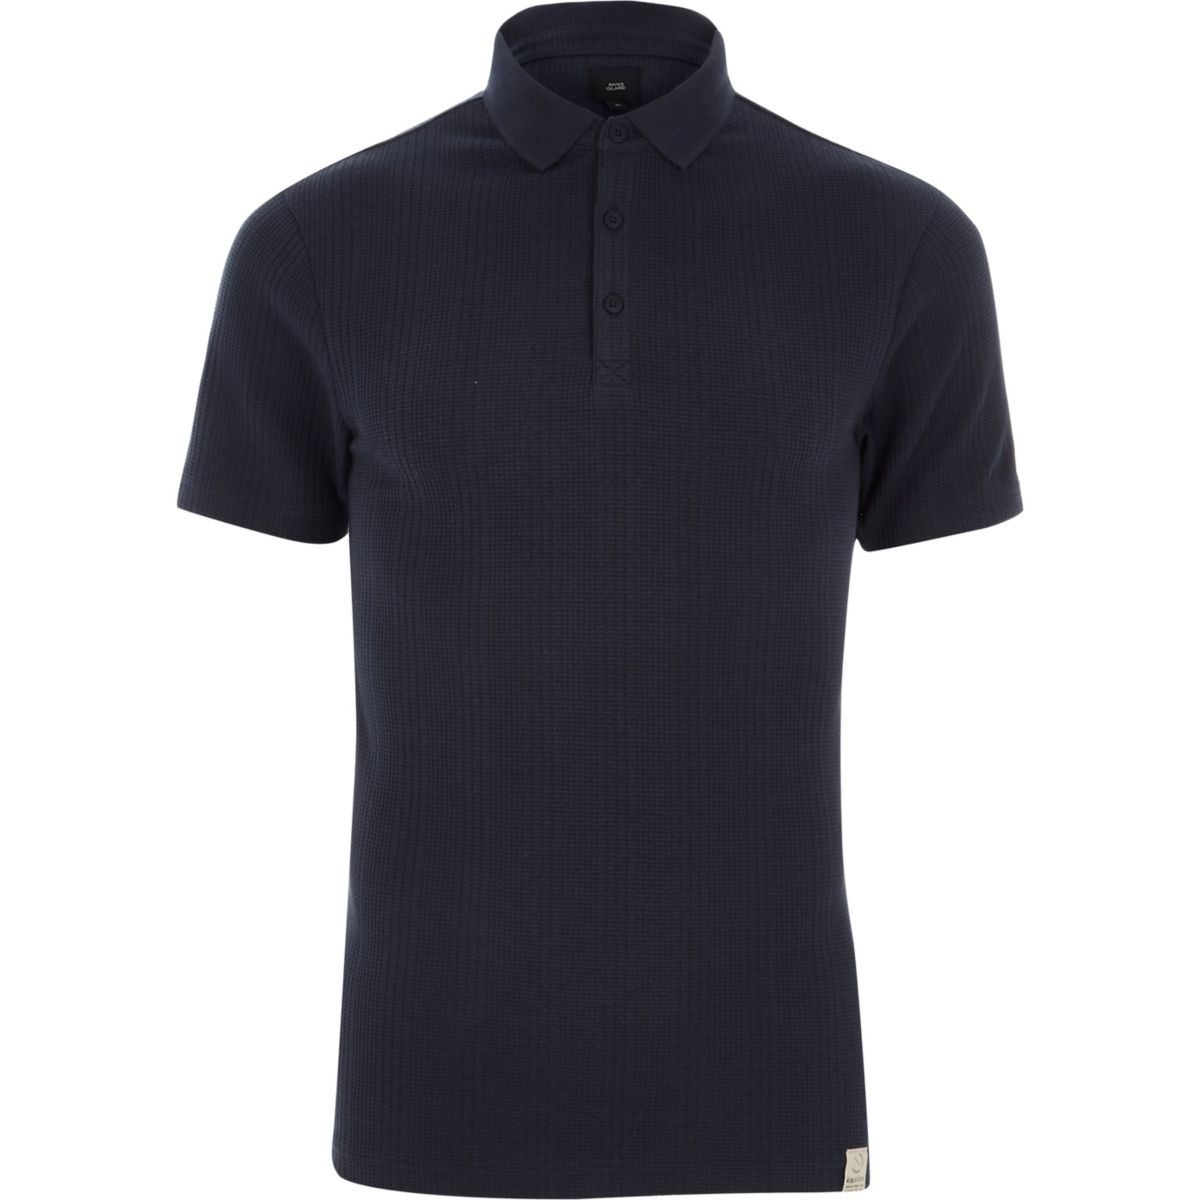 Navy muscle fit waffle block polo shirt